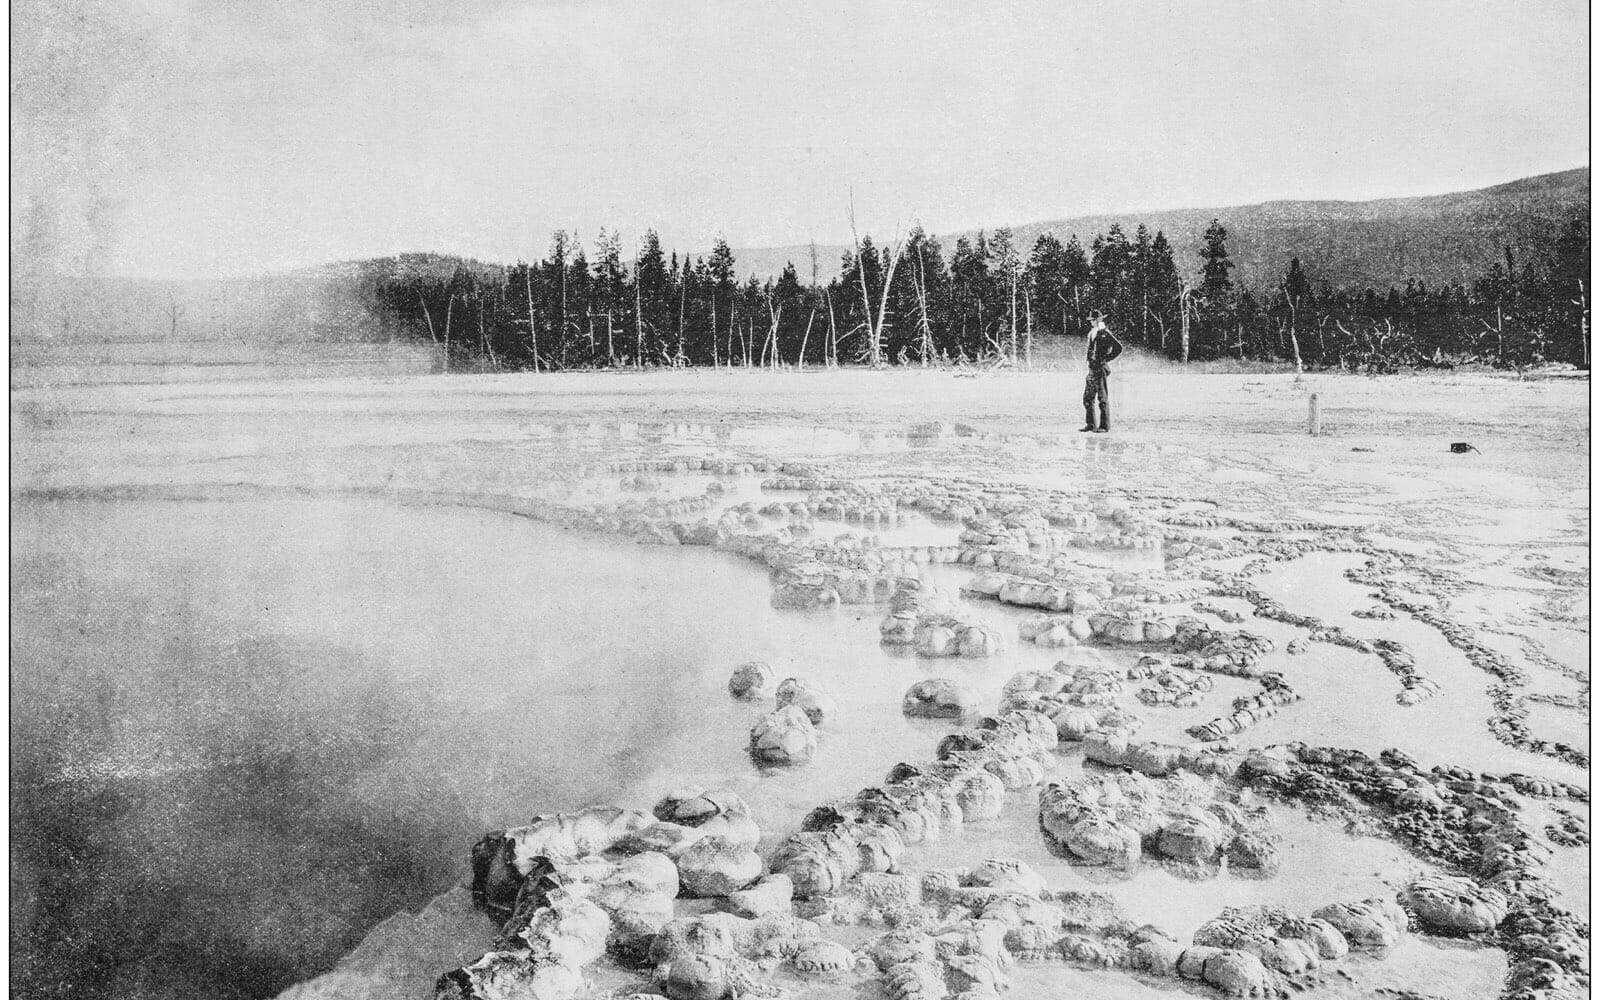 Vintage images of cowboy standing next to Jackson Hole in Wyoming